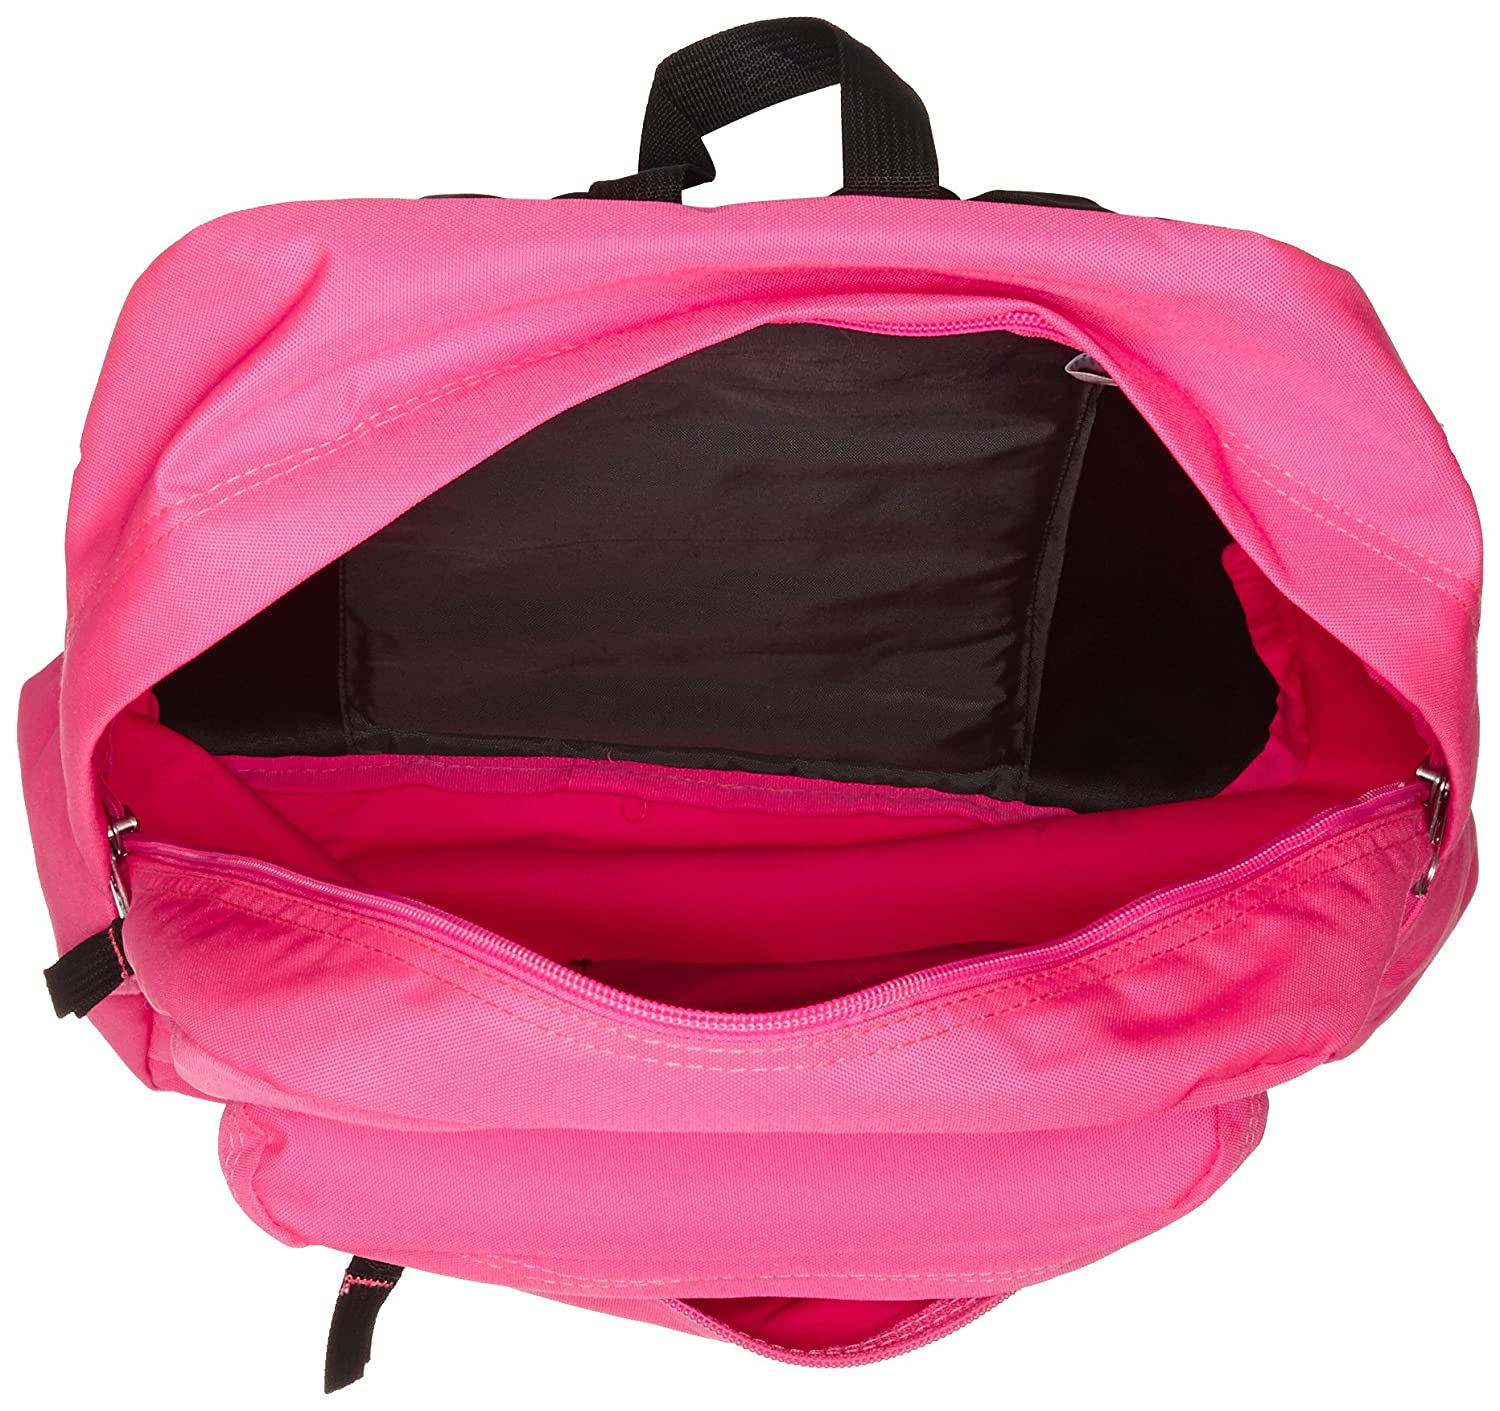 Pink Jansport Backpack Walmart | Fitzpatrick Painting